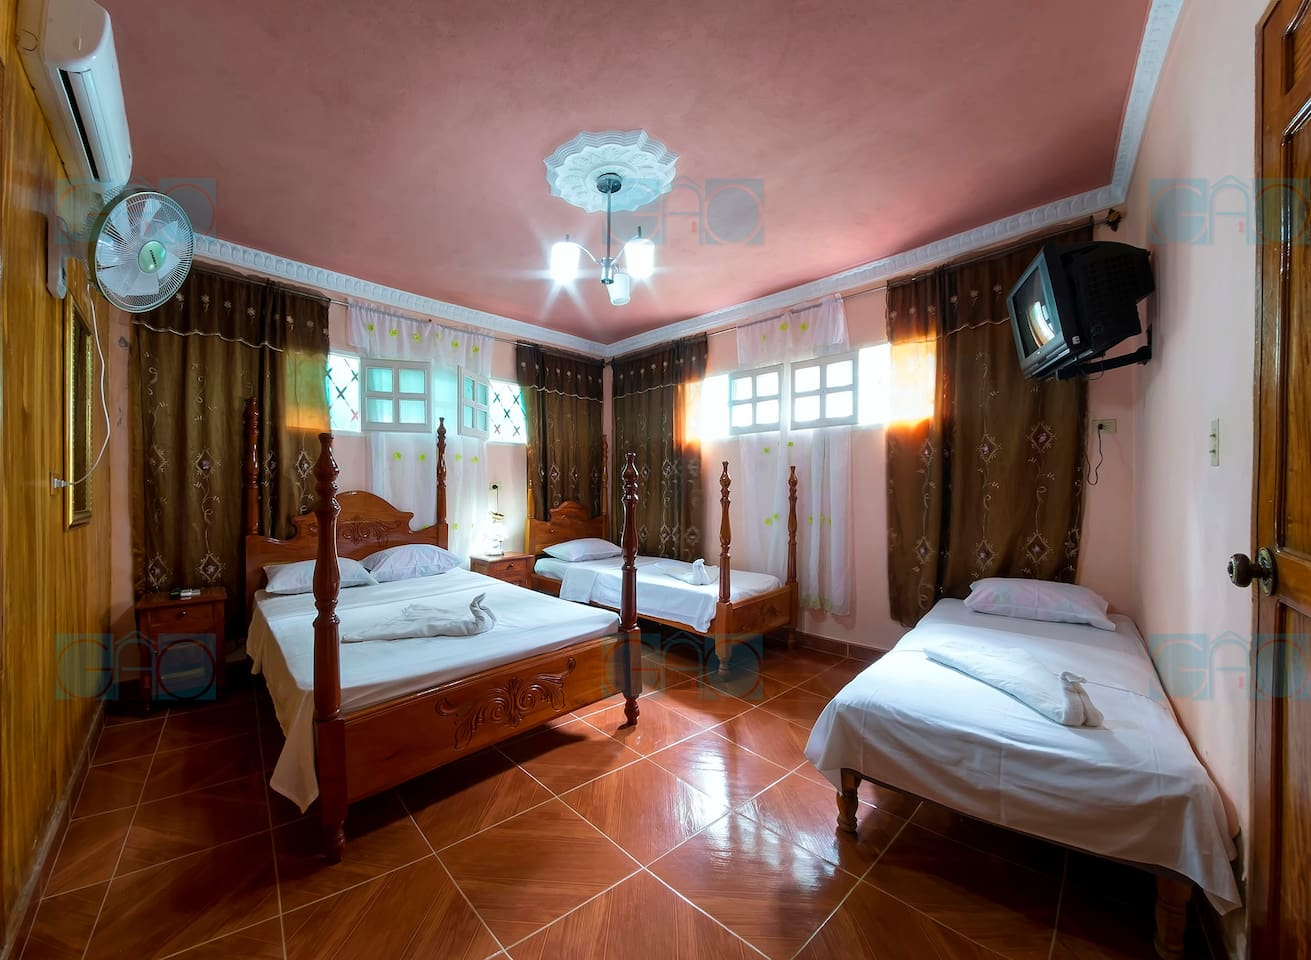 Private bedroom with one double bed, two personal beds, TV, Air conditioning, private bathroom and wetbar  area.